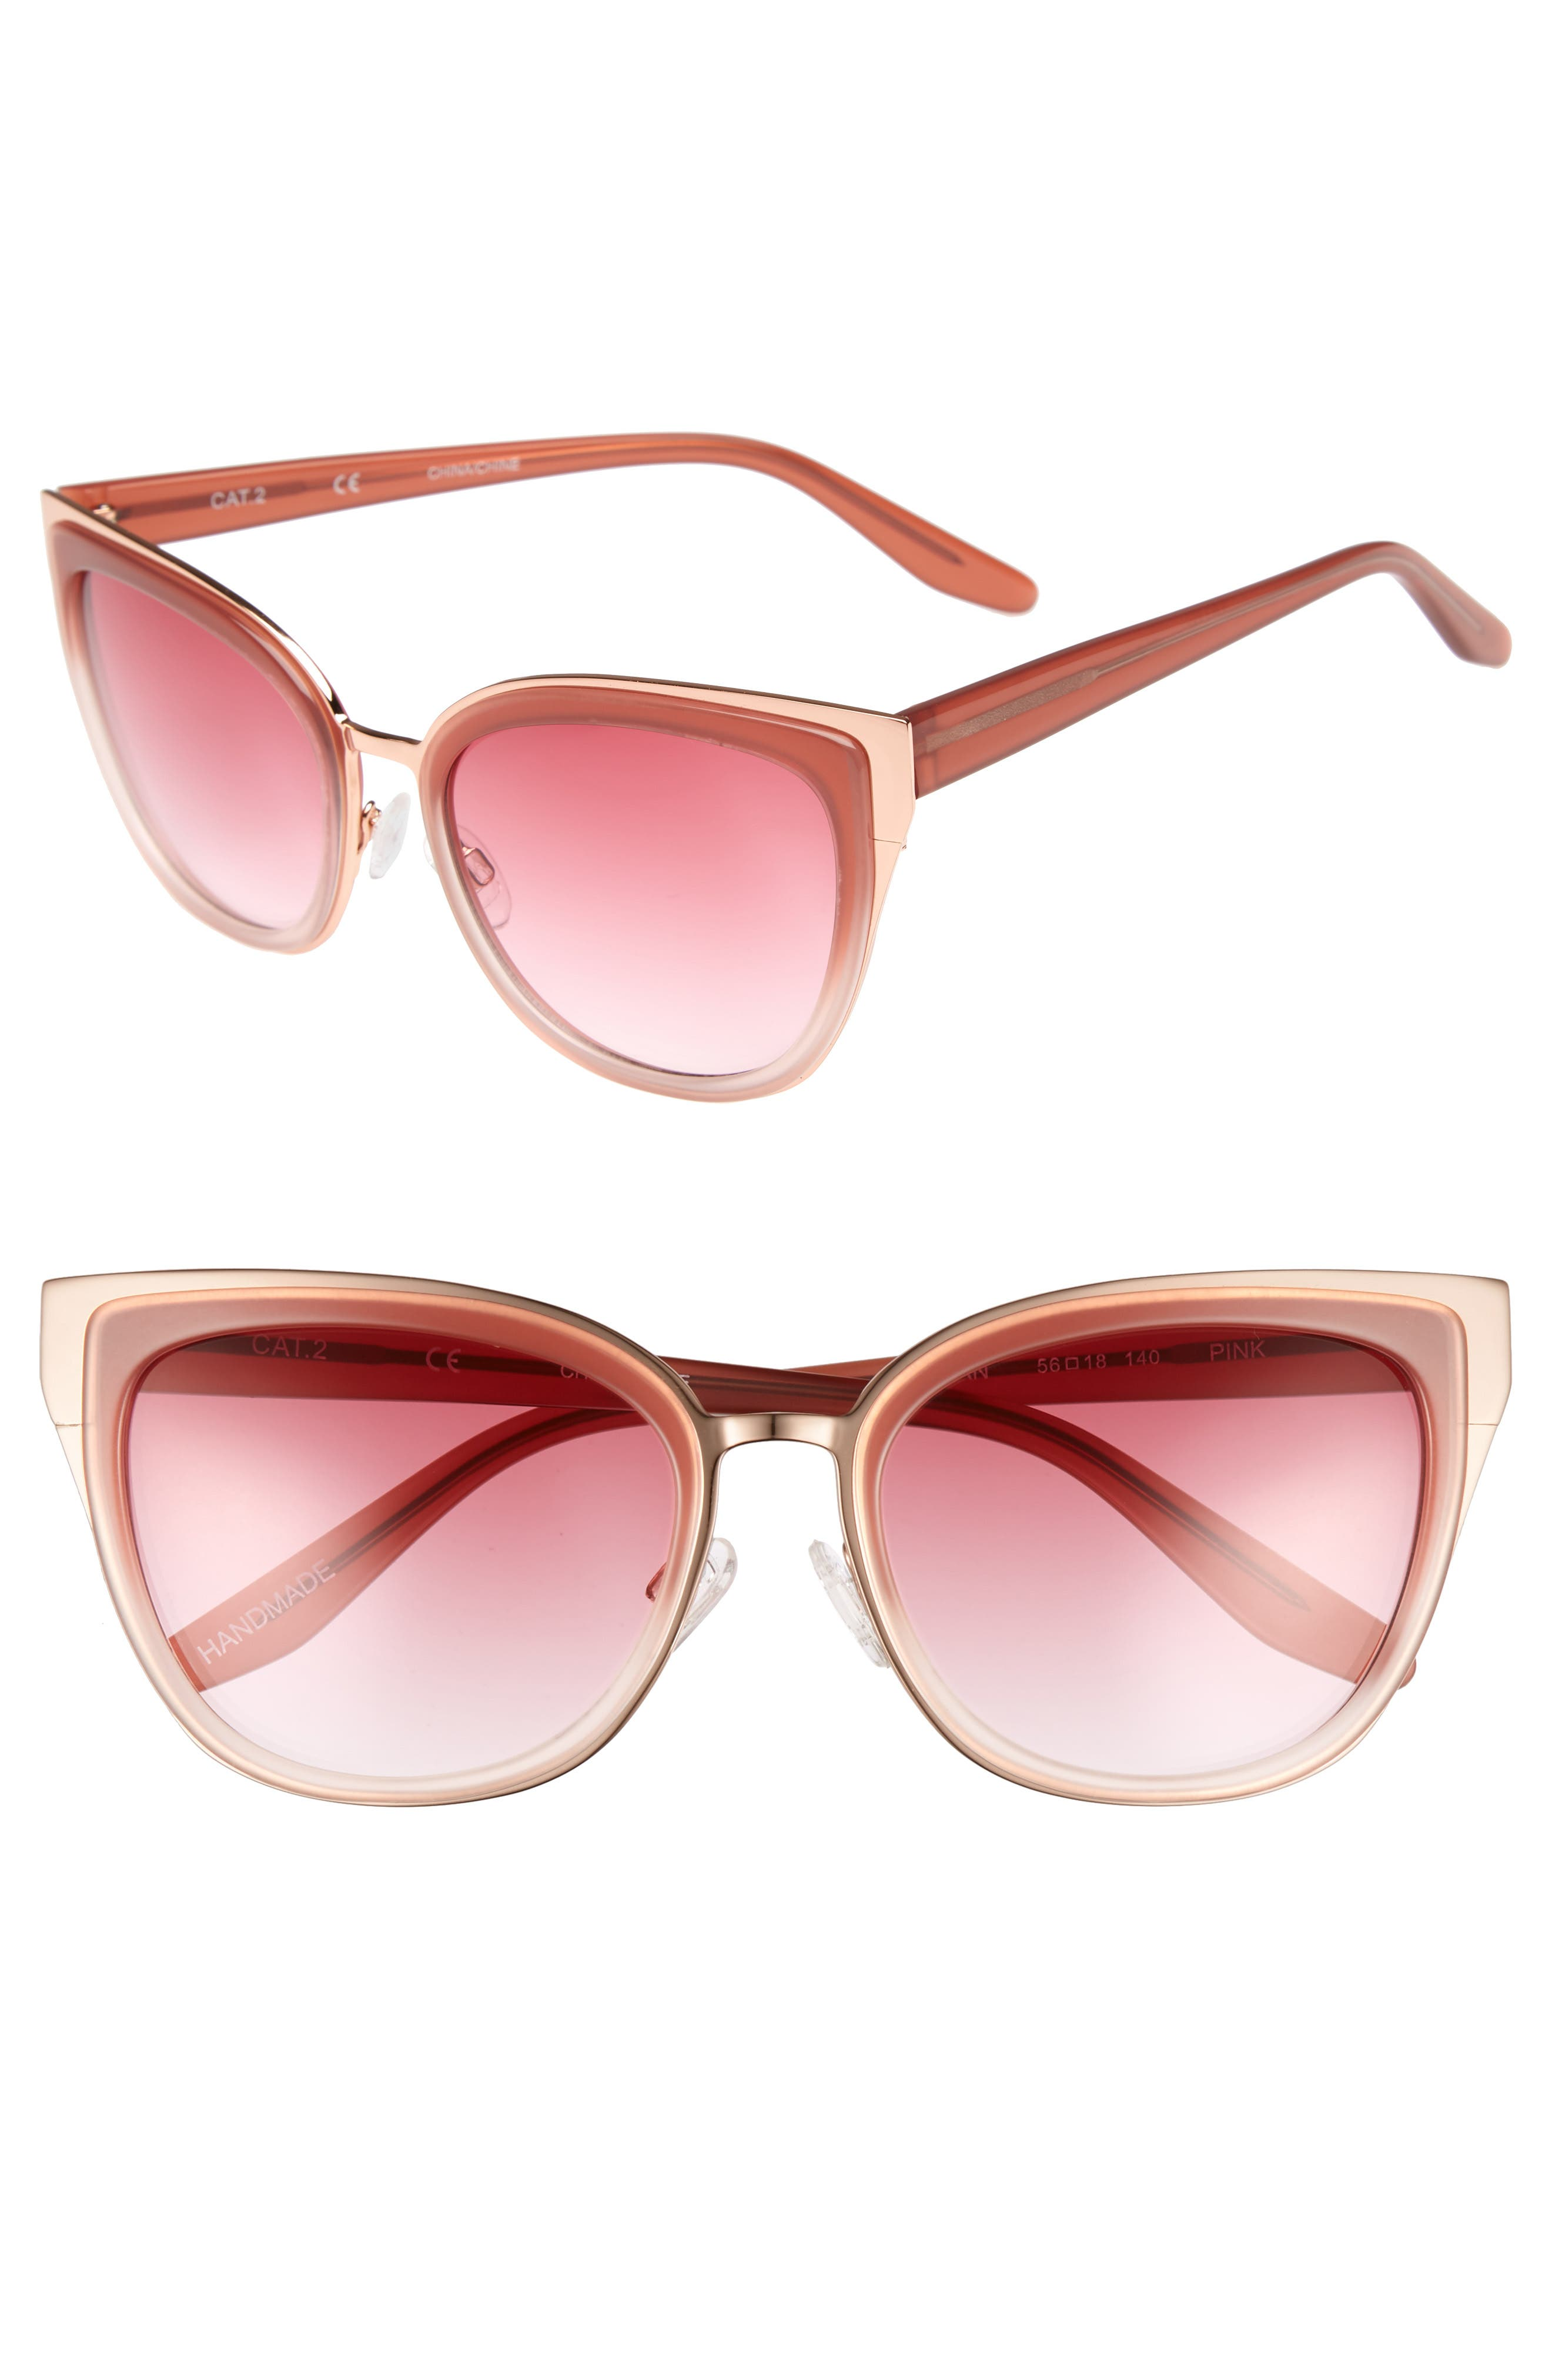 Lillian 56mm Sunglasses,                         Main,                         color, Milky Pink- Rose Gold